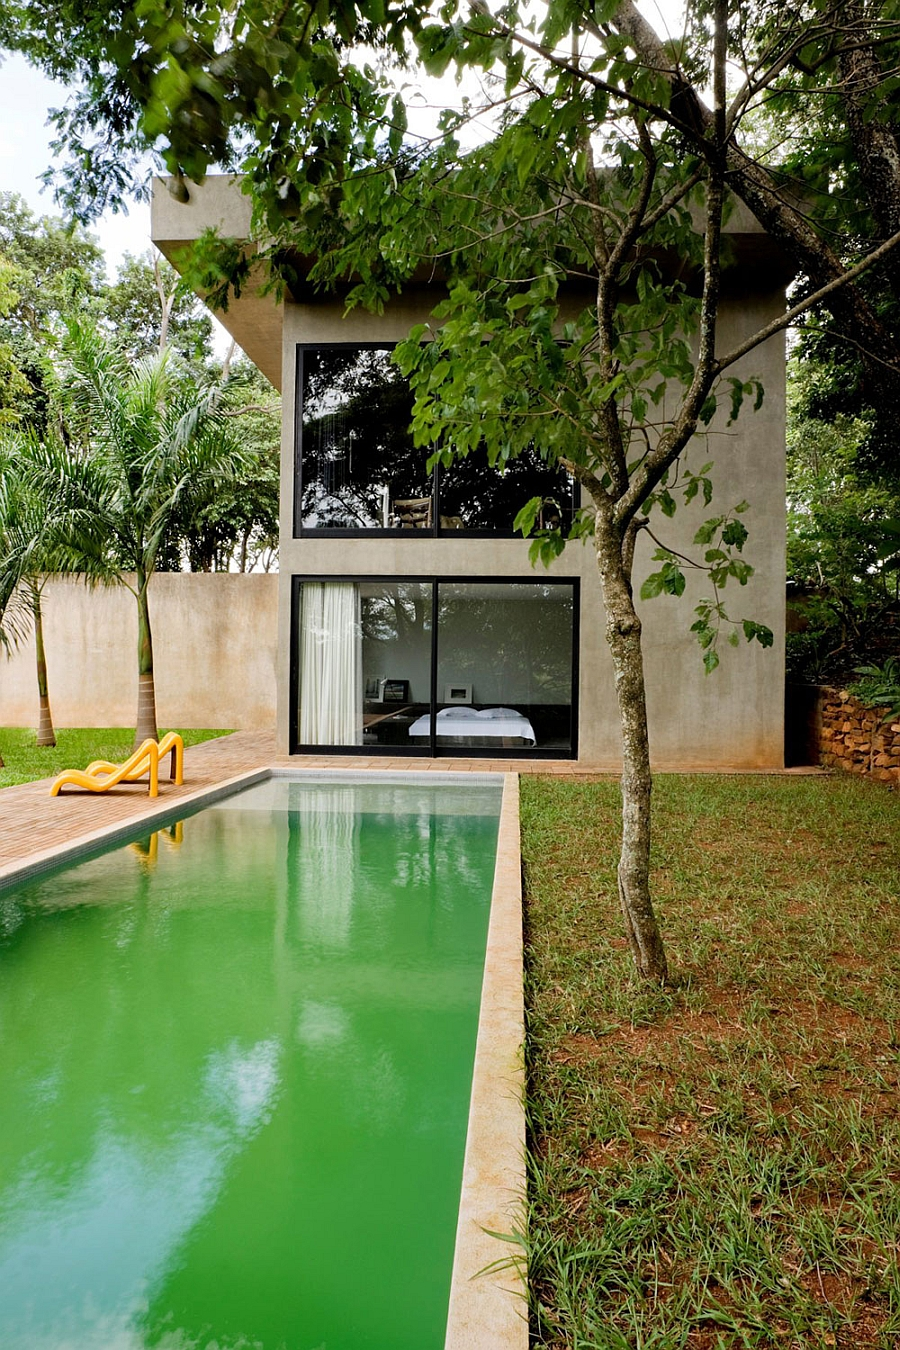 Lovely pool and backyard of the Brazilian house